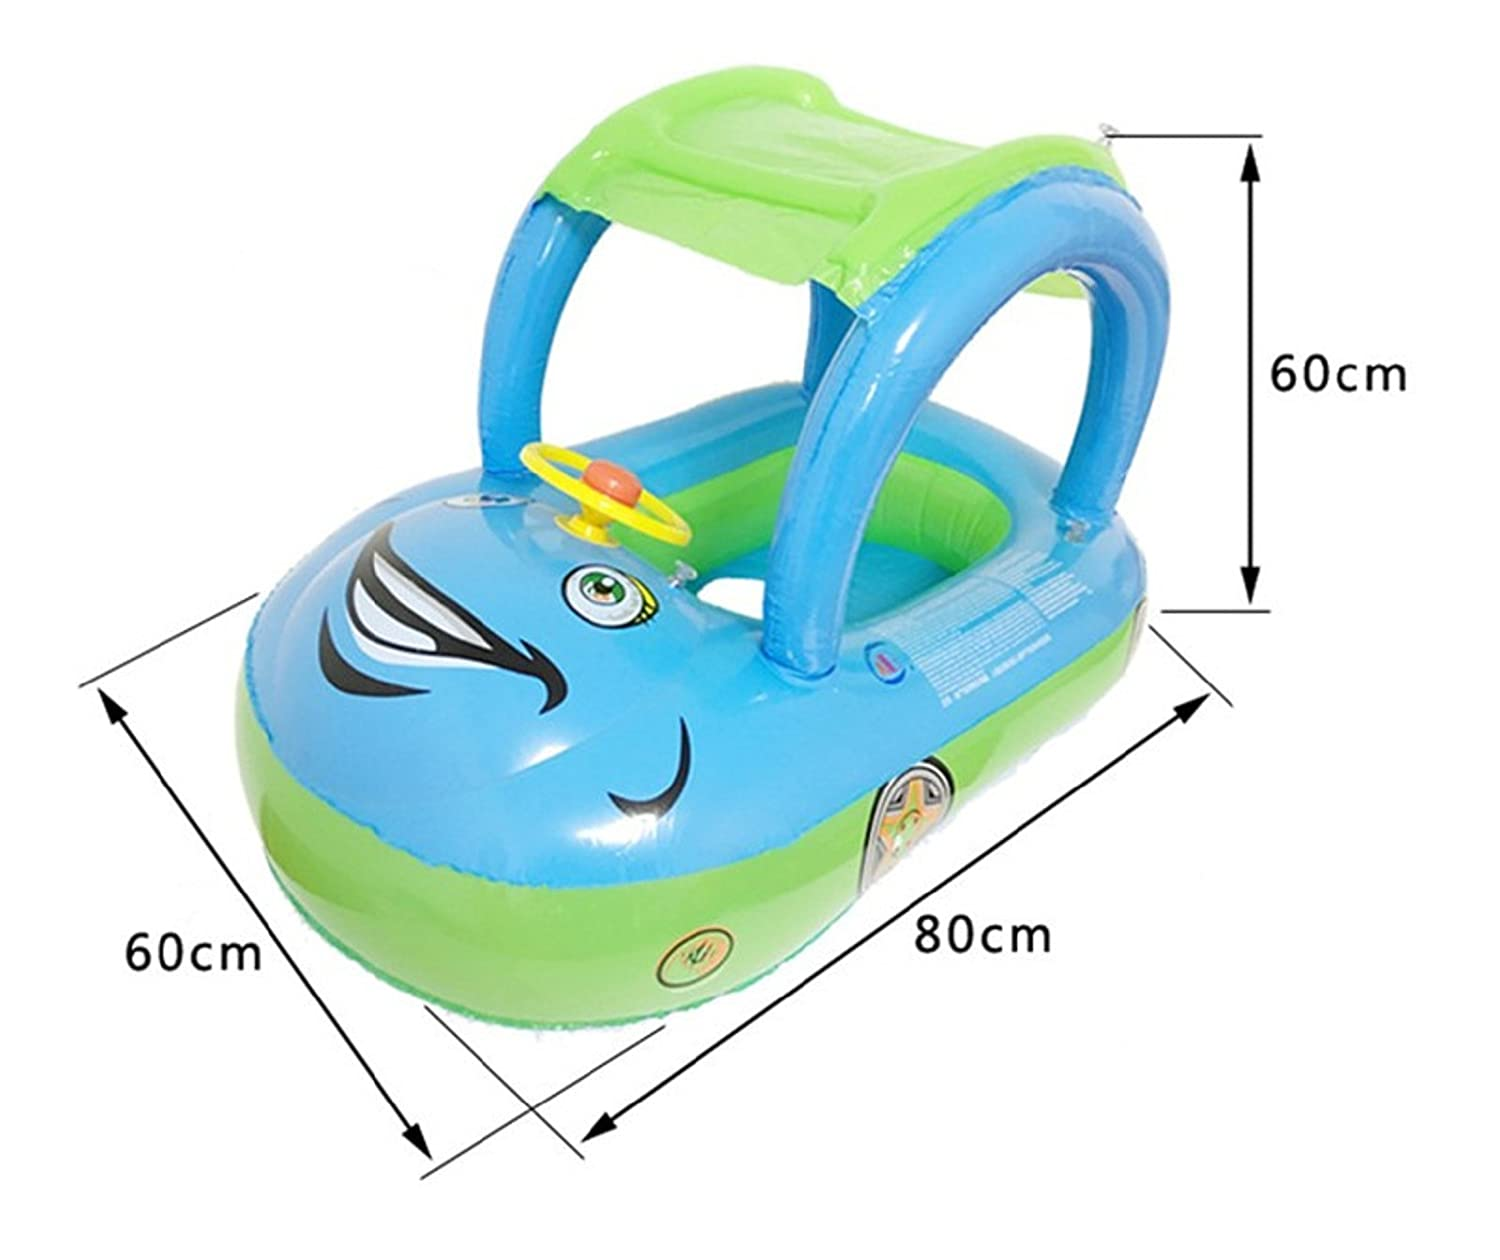 Baby Float Seat Car Sun Shade Baby Swim Inflatable Donut Ring Children Rubber Circles Flotador Swimtrainer Swimming Accessories (Purple): Toys & Games